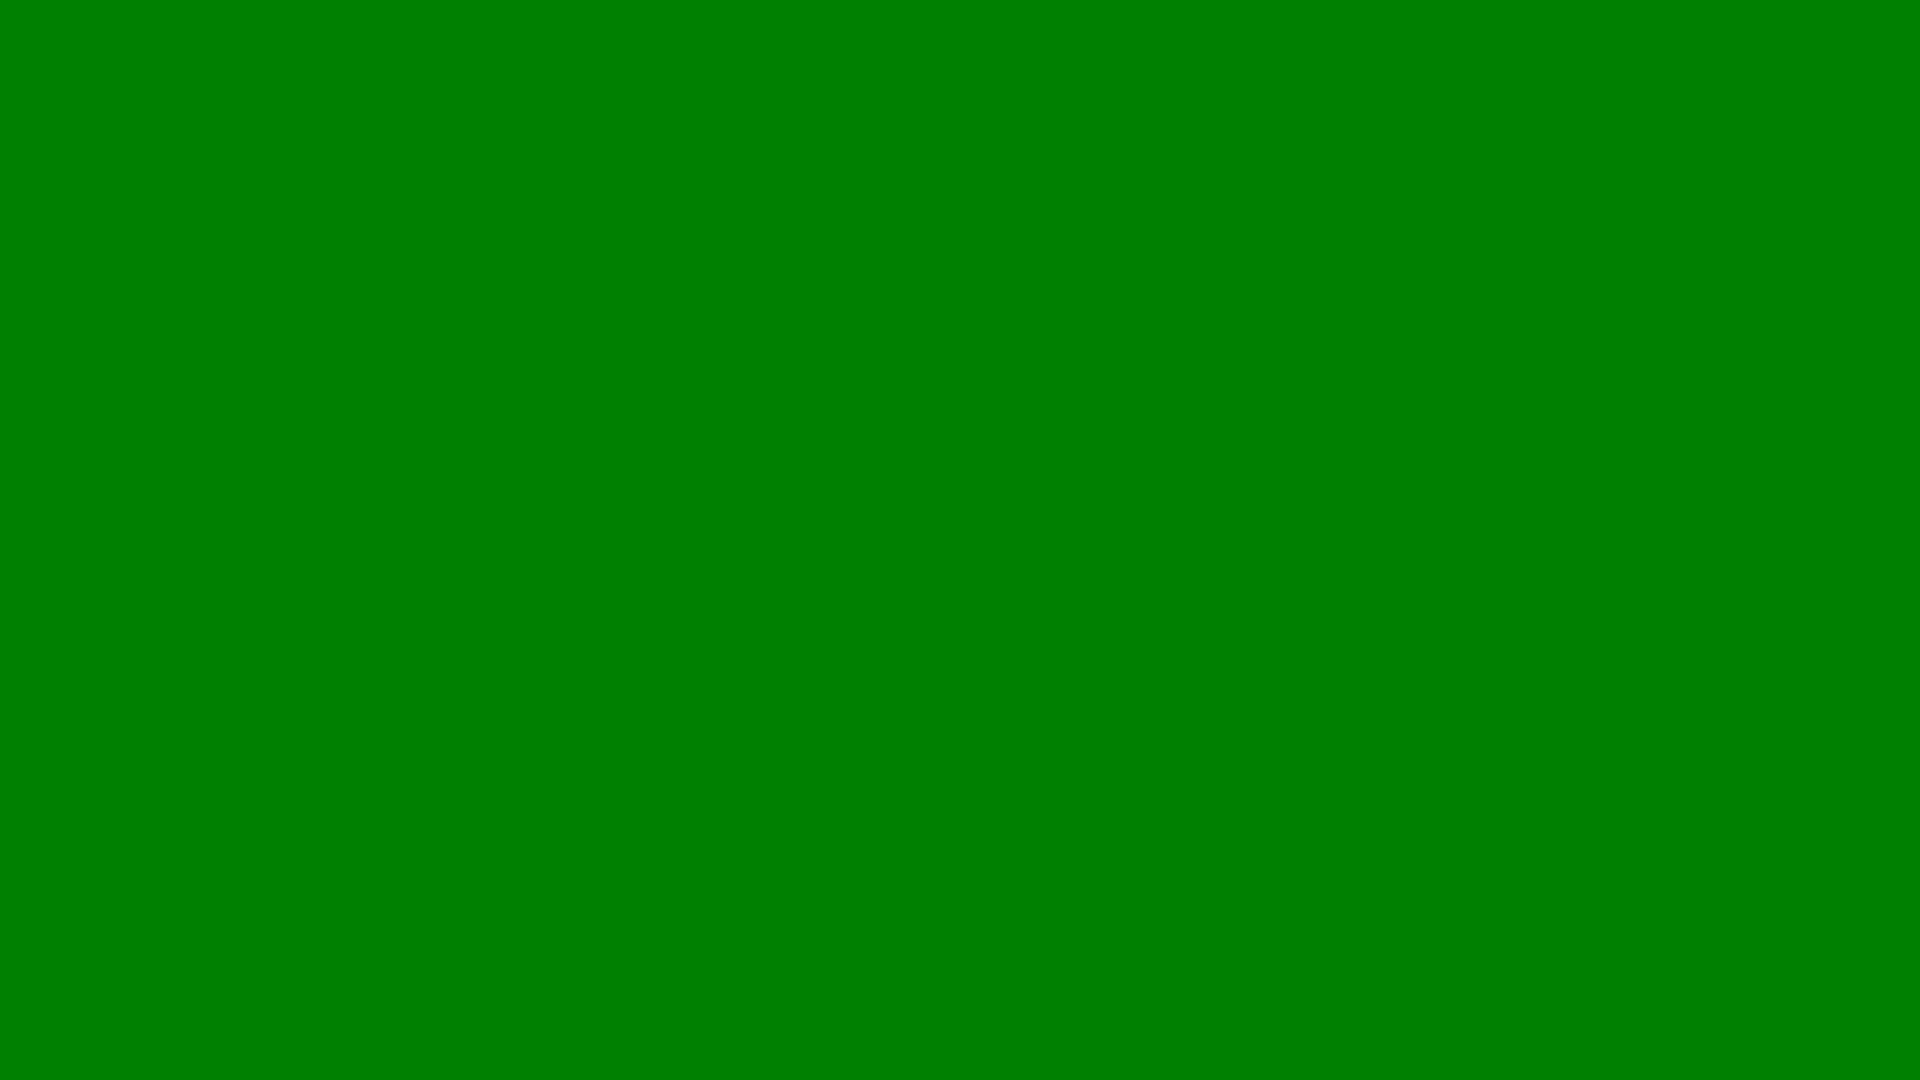 1920x1080 - Solid Green 6